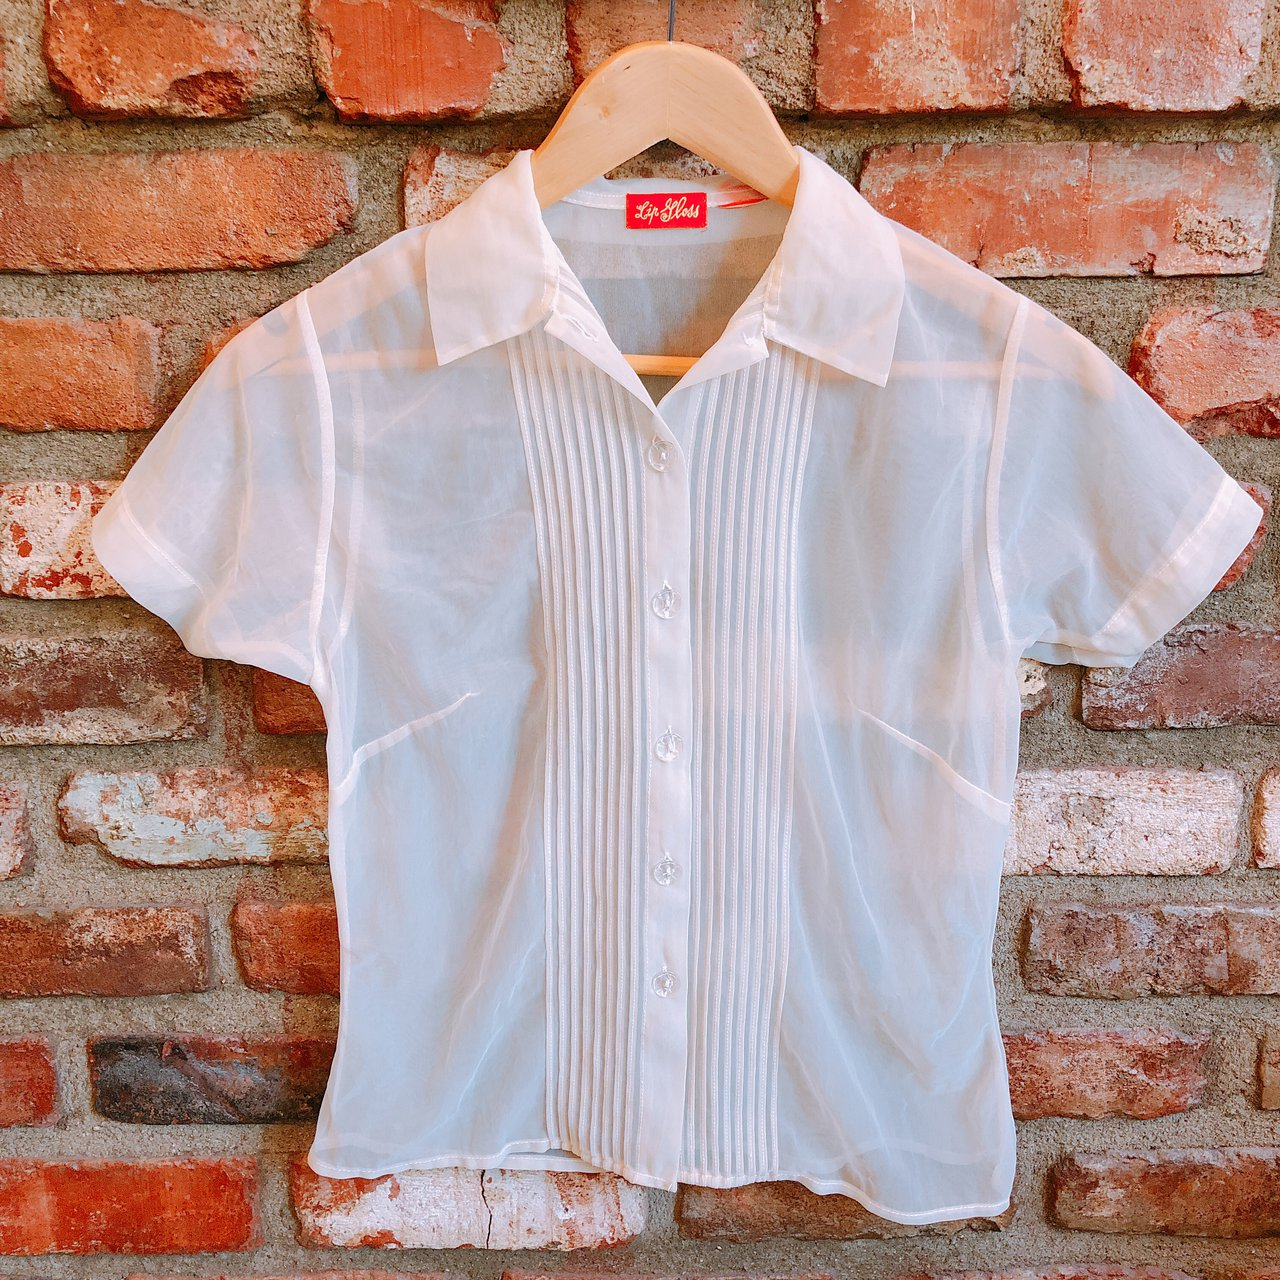 90s See Through Collar Shirt Used Condition Size Xss Depop